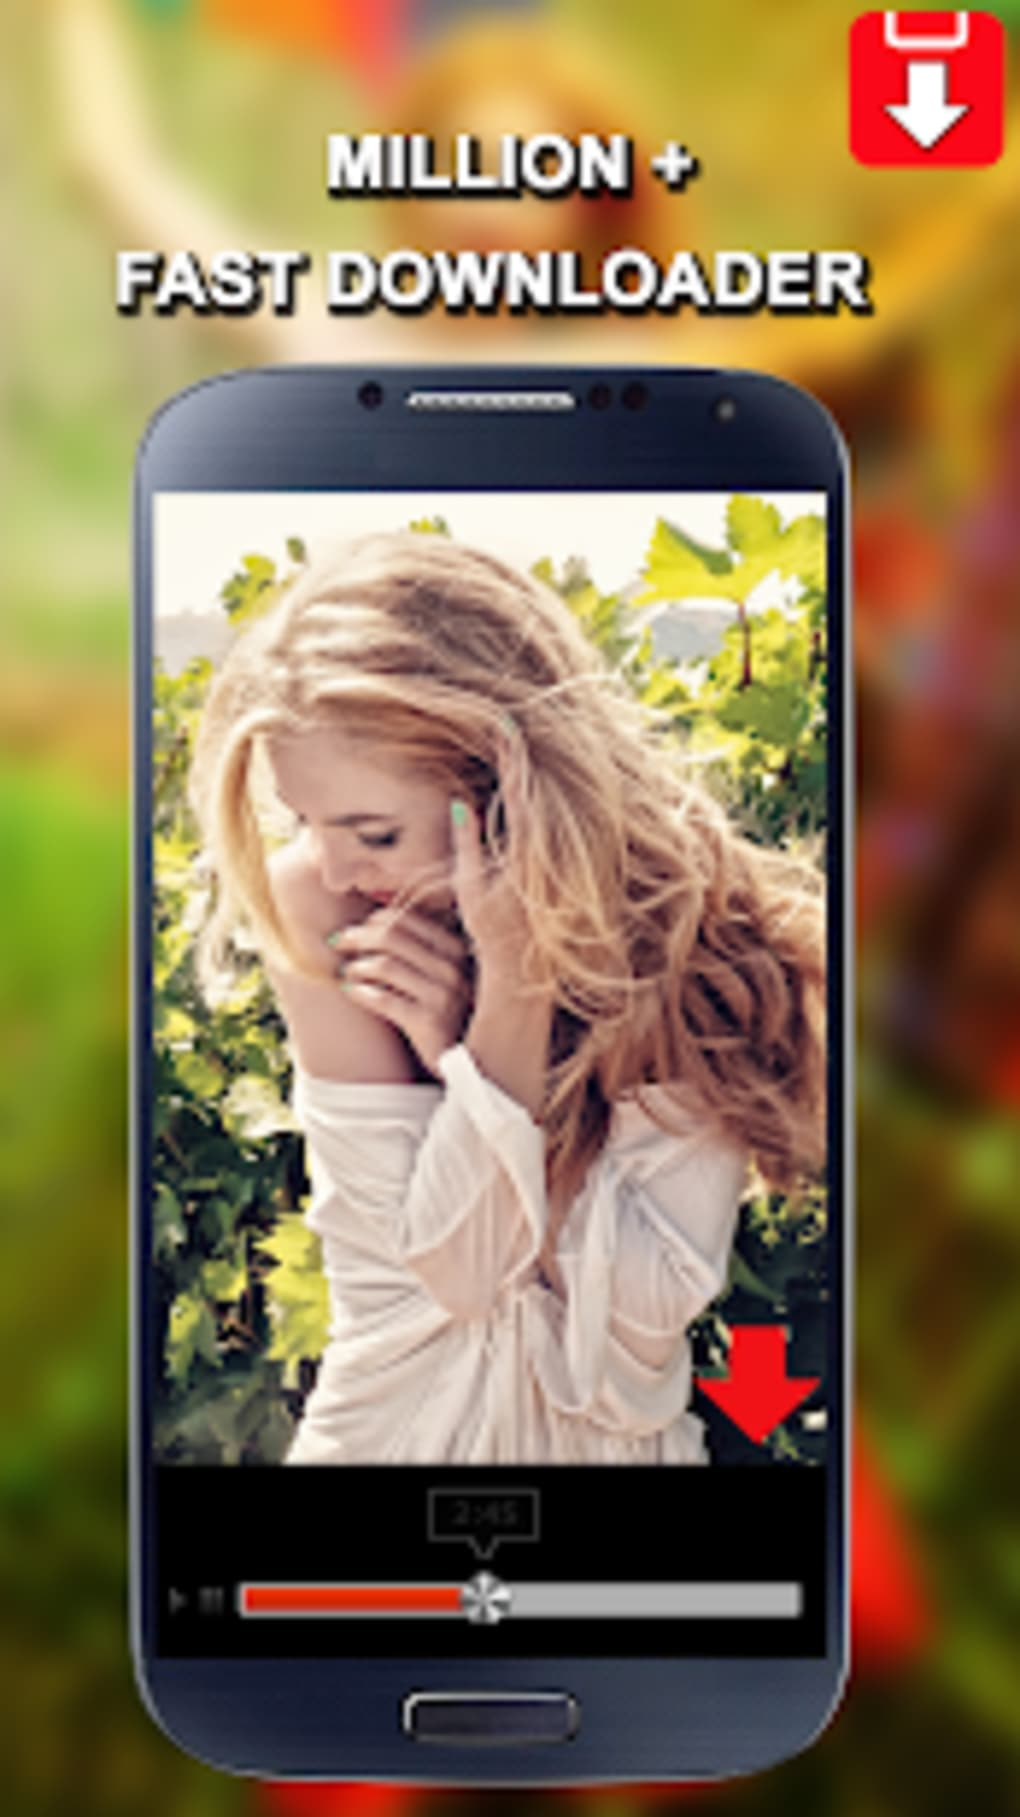 All Video Downloader Mp4 Player HD APK for Android - Download